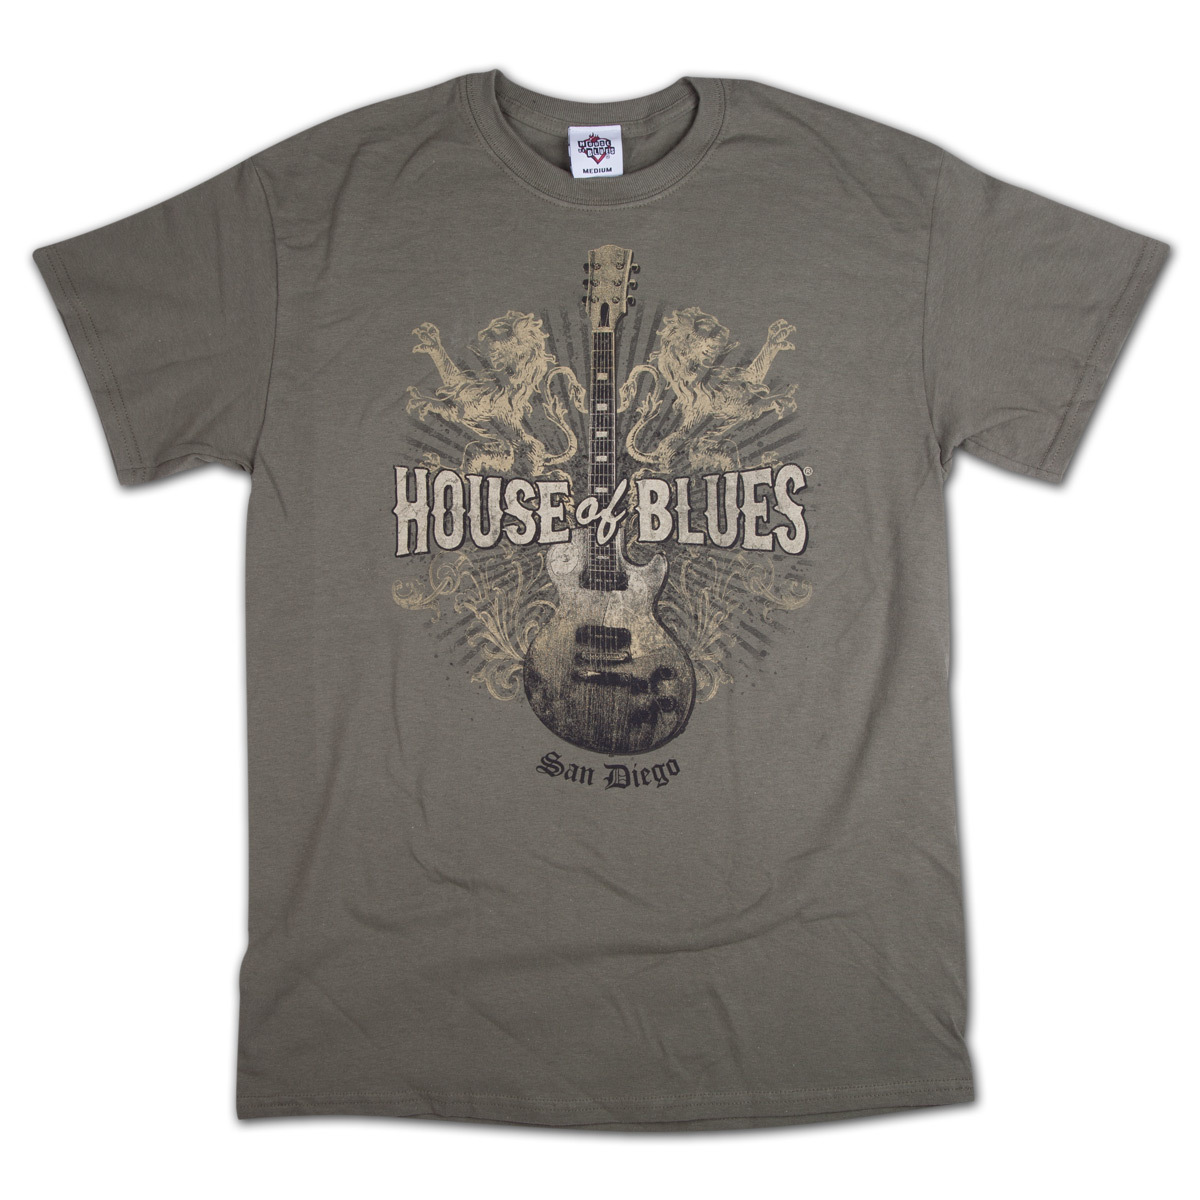 Lions guitar t shirt san diego shop the house of blues for Shirt printing san diego